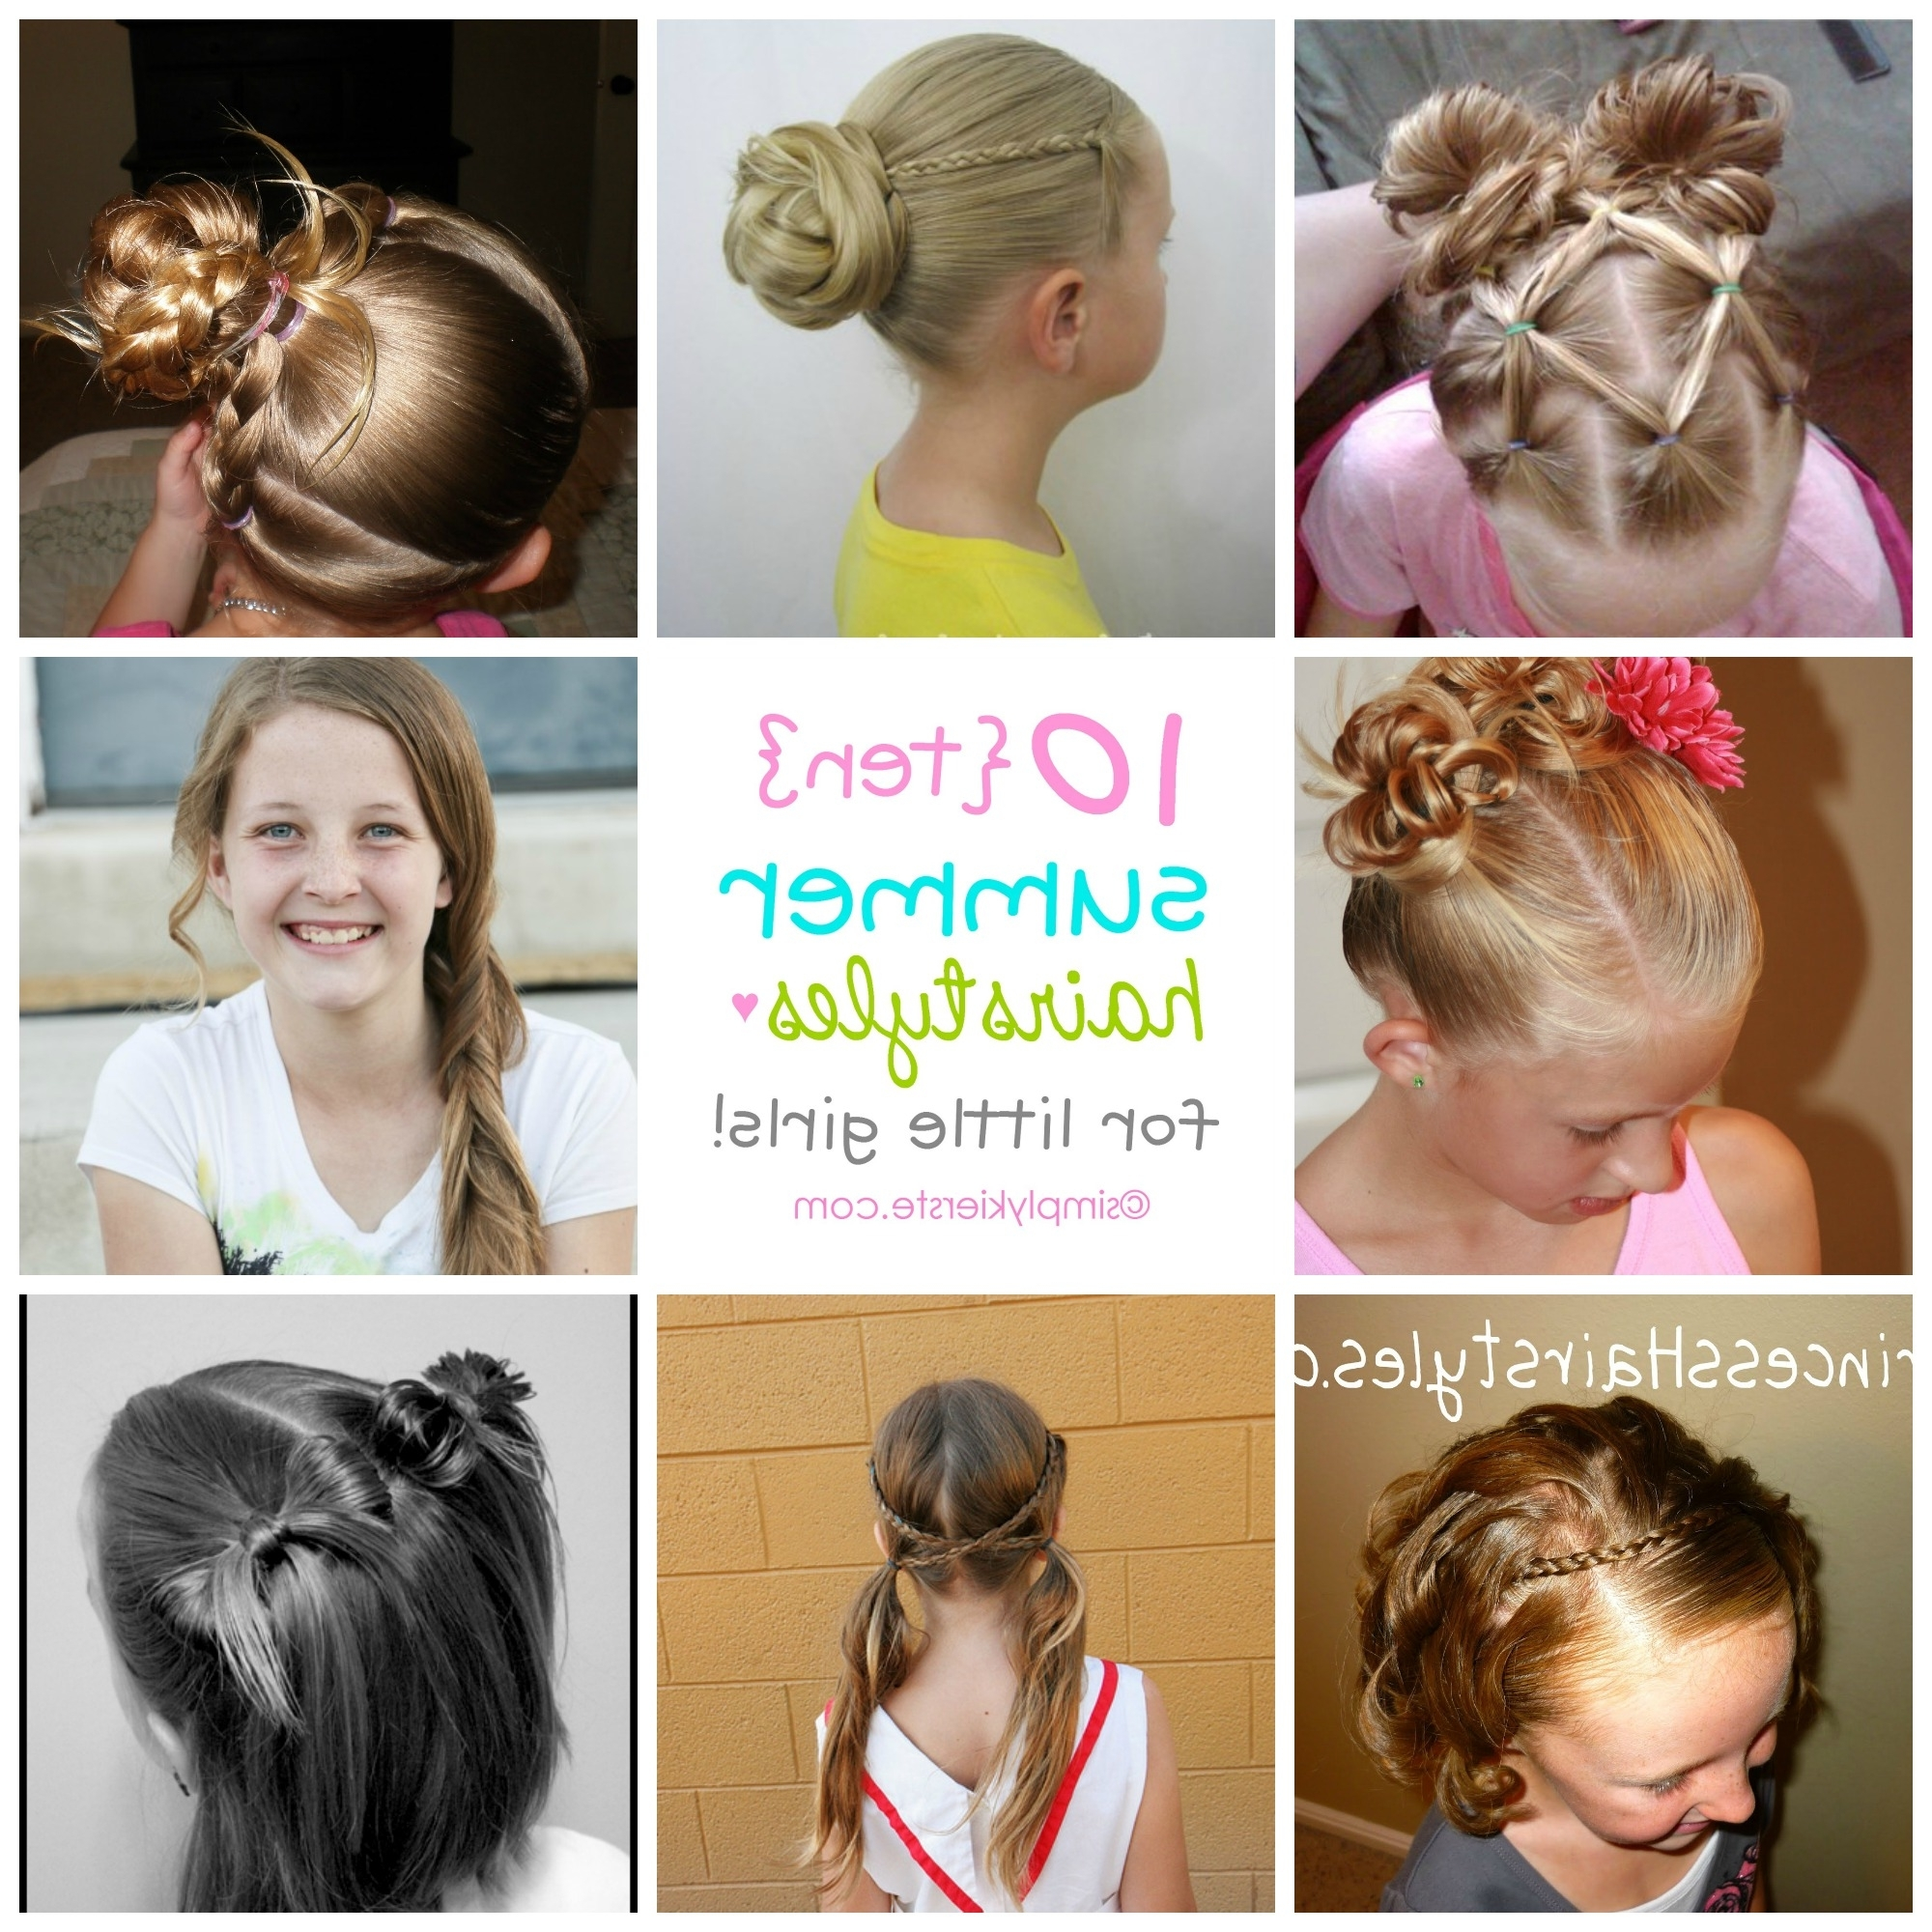 10 Fun Summer Hairstyles For Little Girls | Simplykierste Throughout Updo Hairstyles For Little Girl With Short Hair (View 1 of 15)